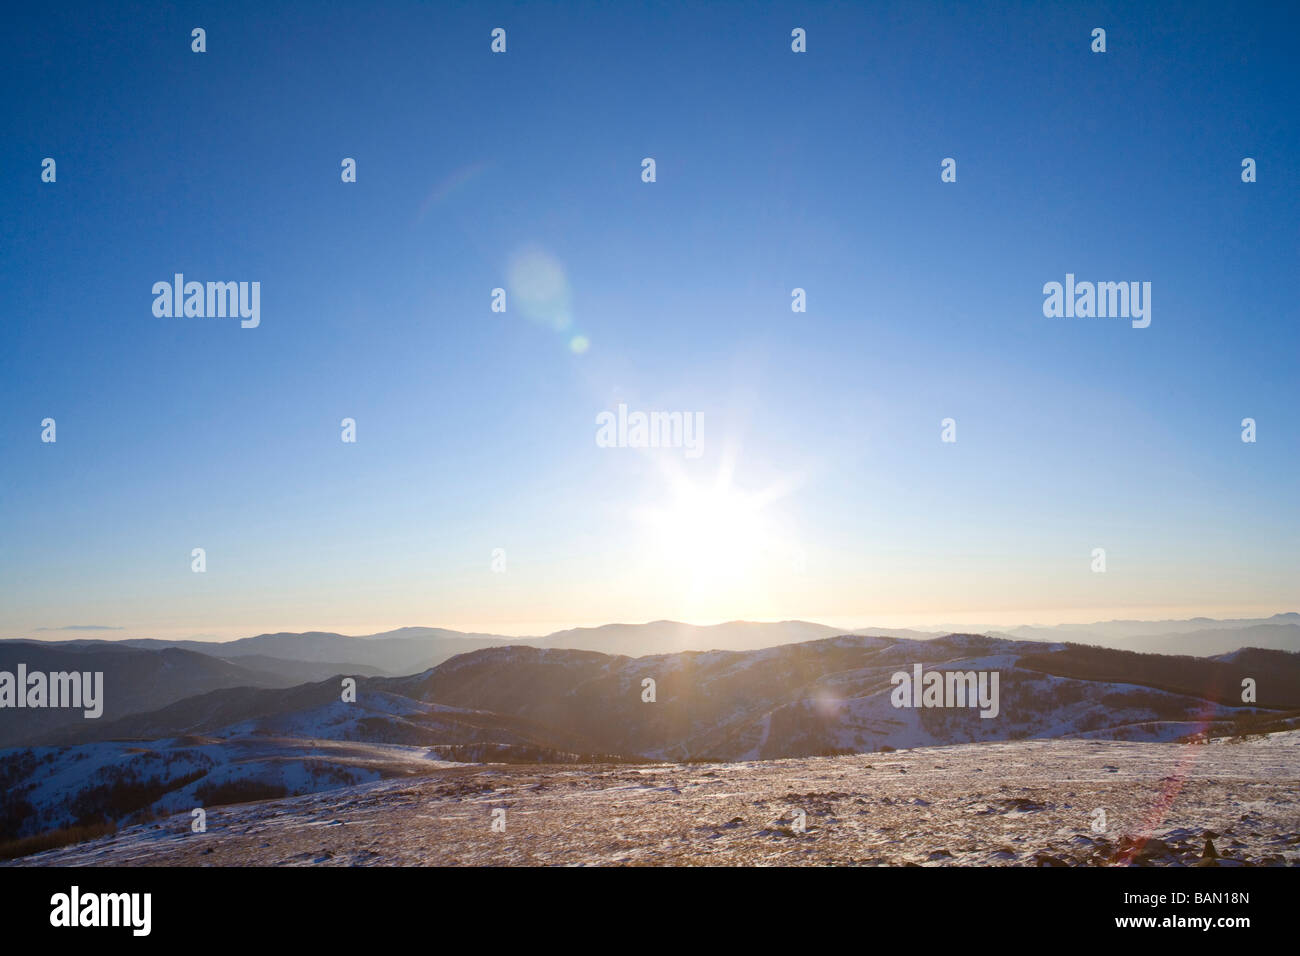 View of the sun setting over a mountain landscape - Stock Image